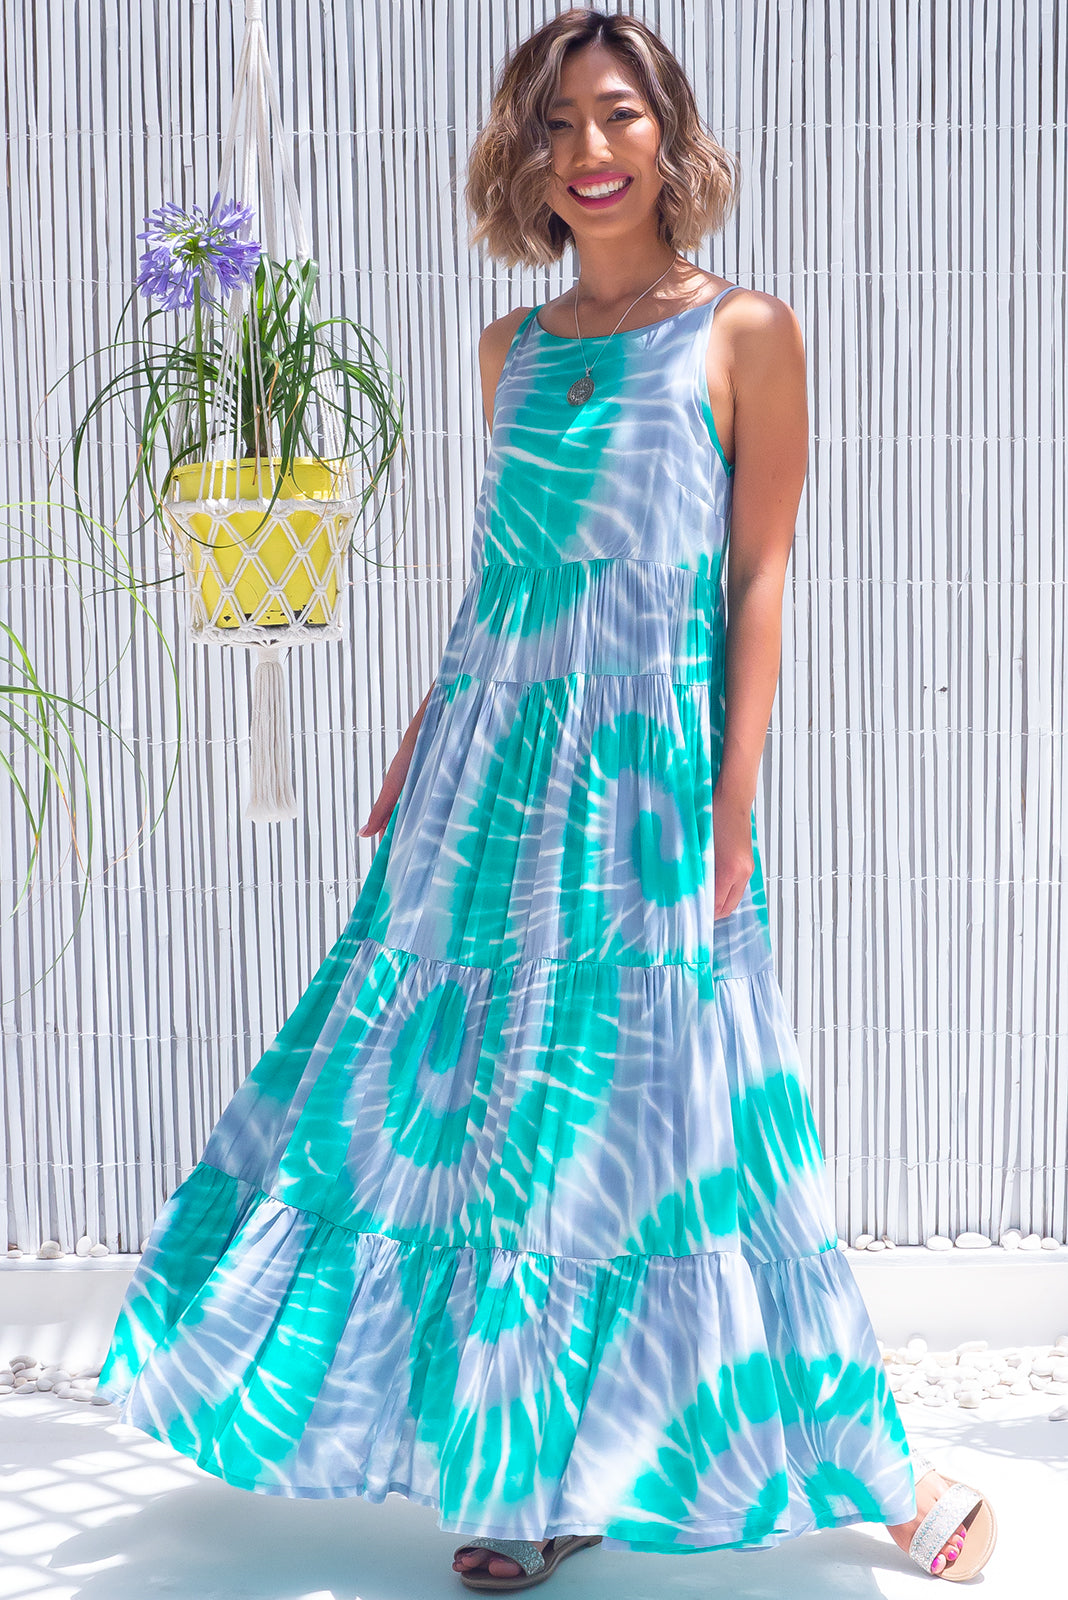 The Lulu Darling Aqua Ripples Maxi Dress features high neck with thin straps, tiered skirt falling from under bust, deep side pockets and 100% rayon in silvery grey and lagoon green ripple print.